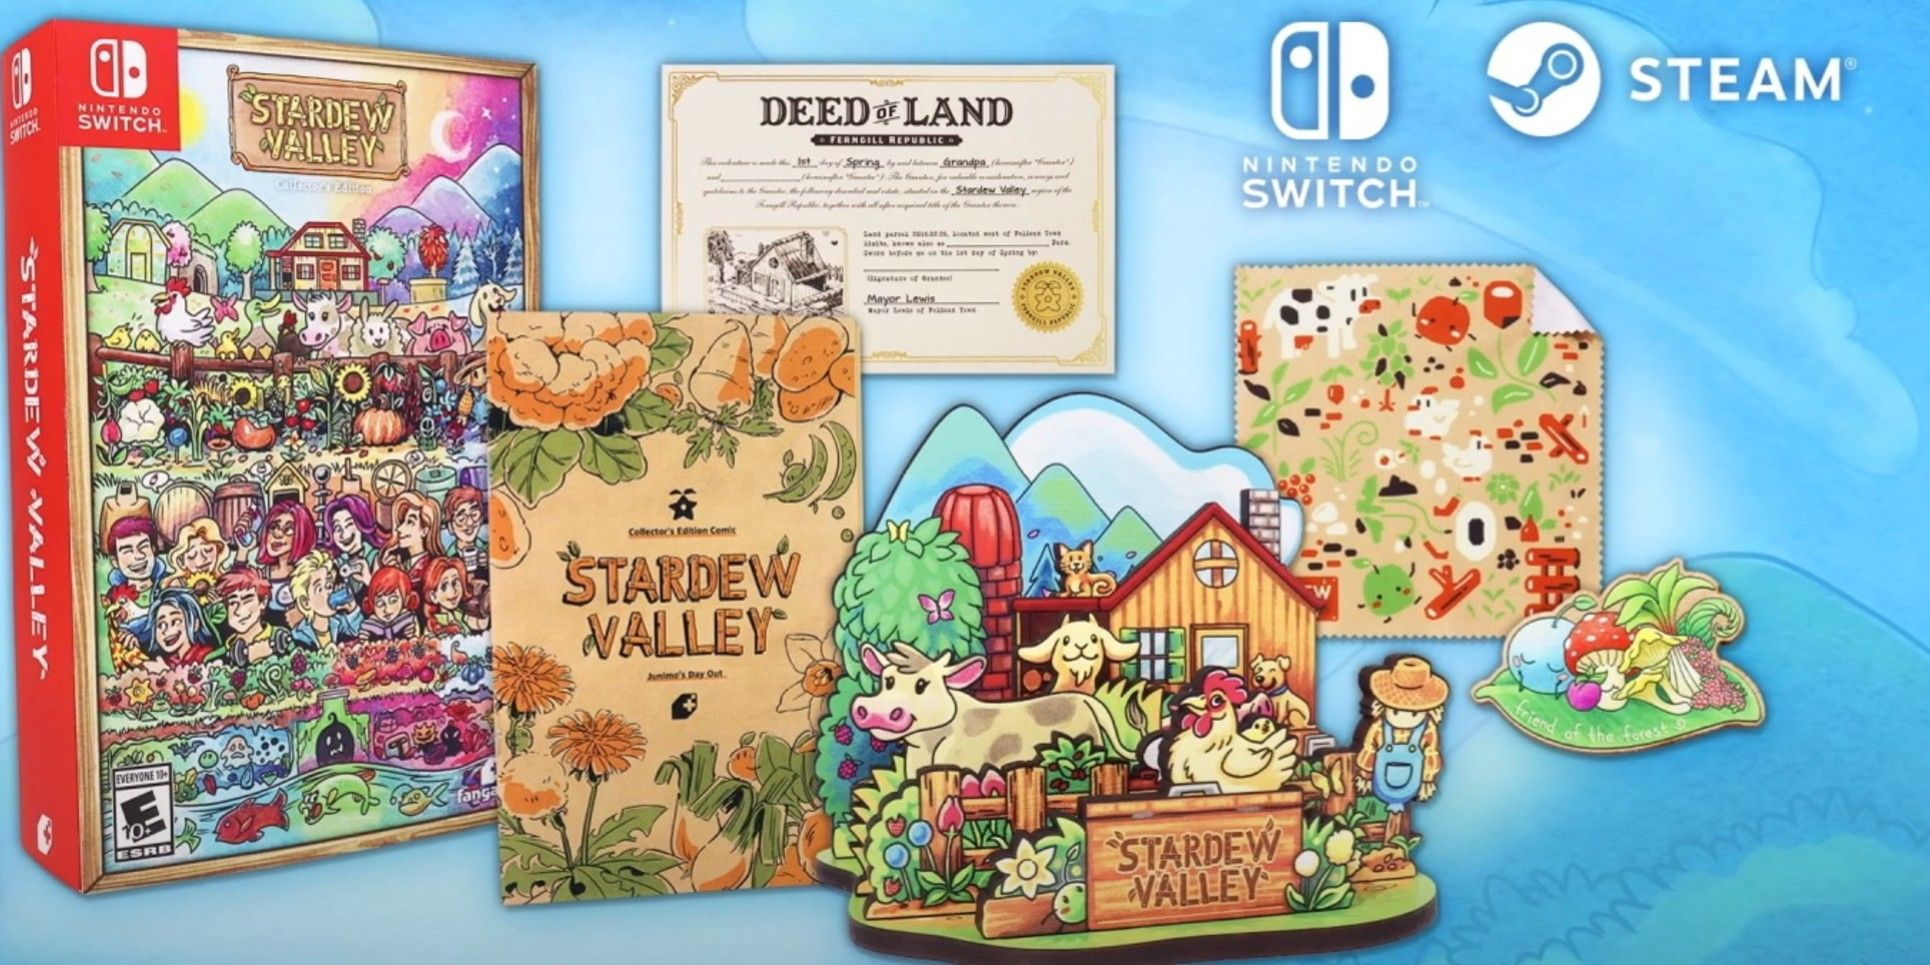 Stardew Valley Will Receive Physical Collector's Edition Release Later This Year